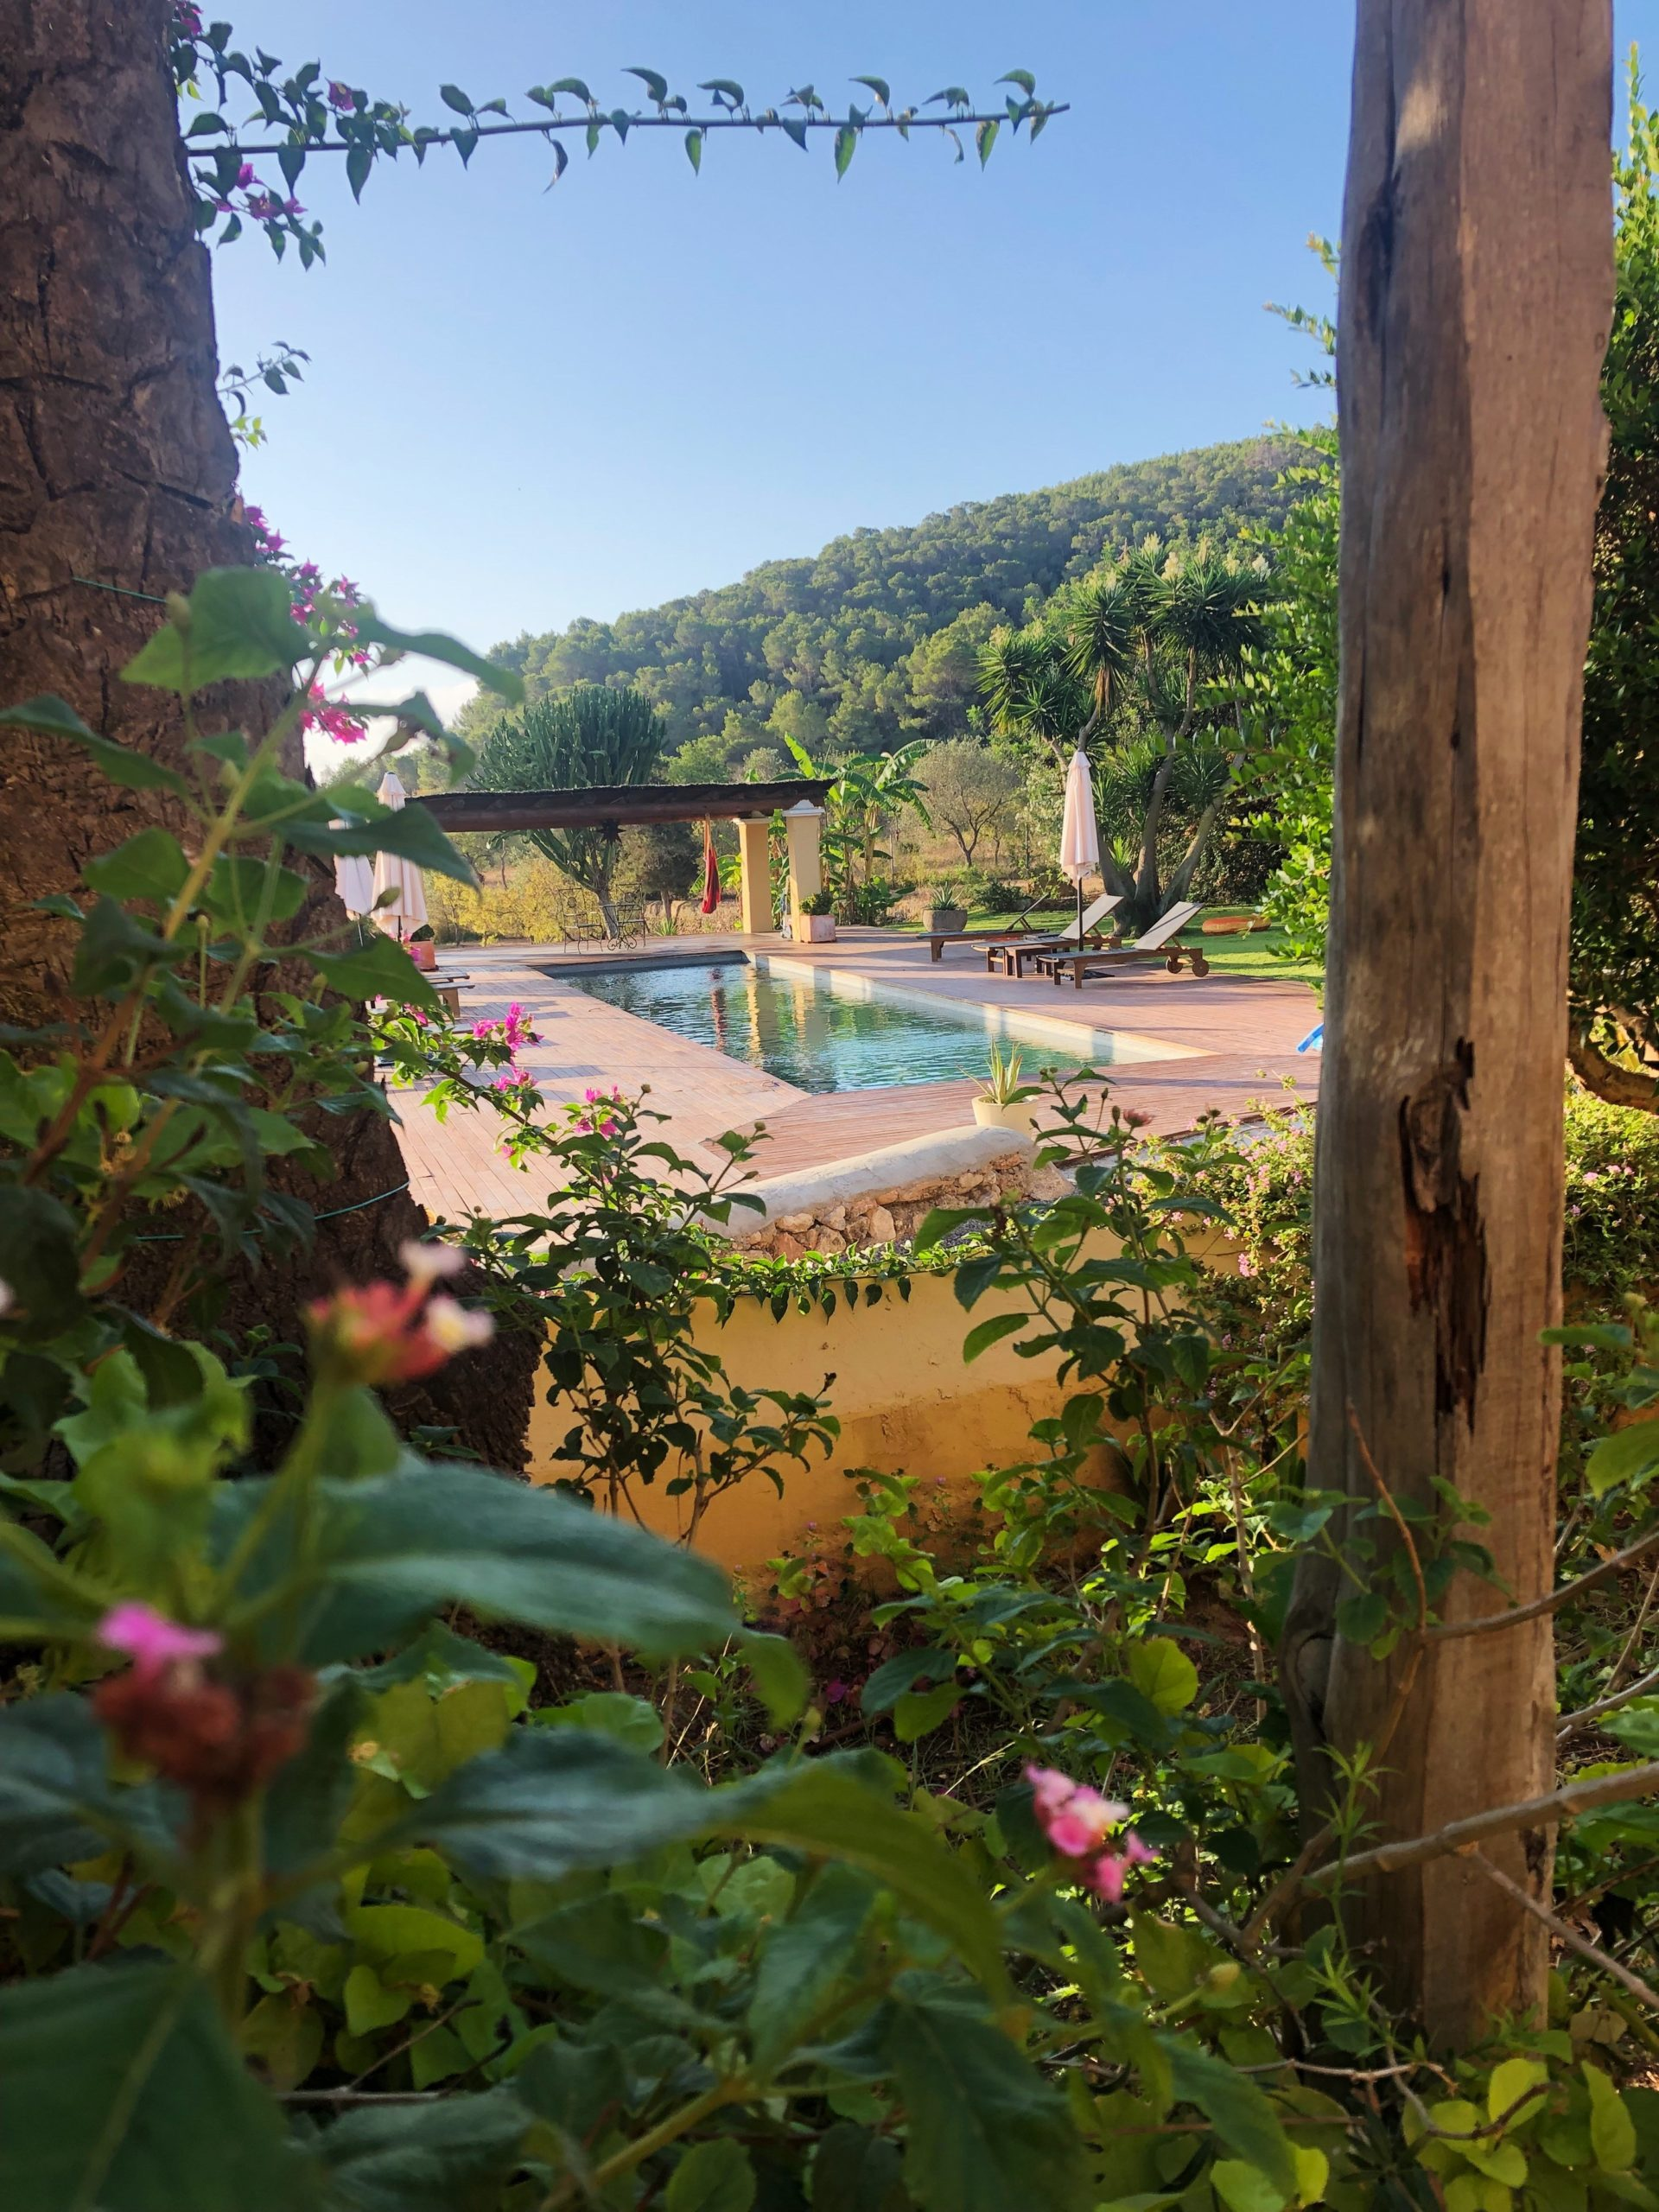 Pool view with flowers